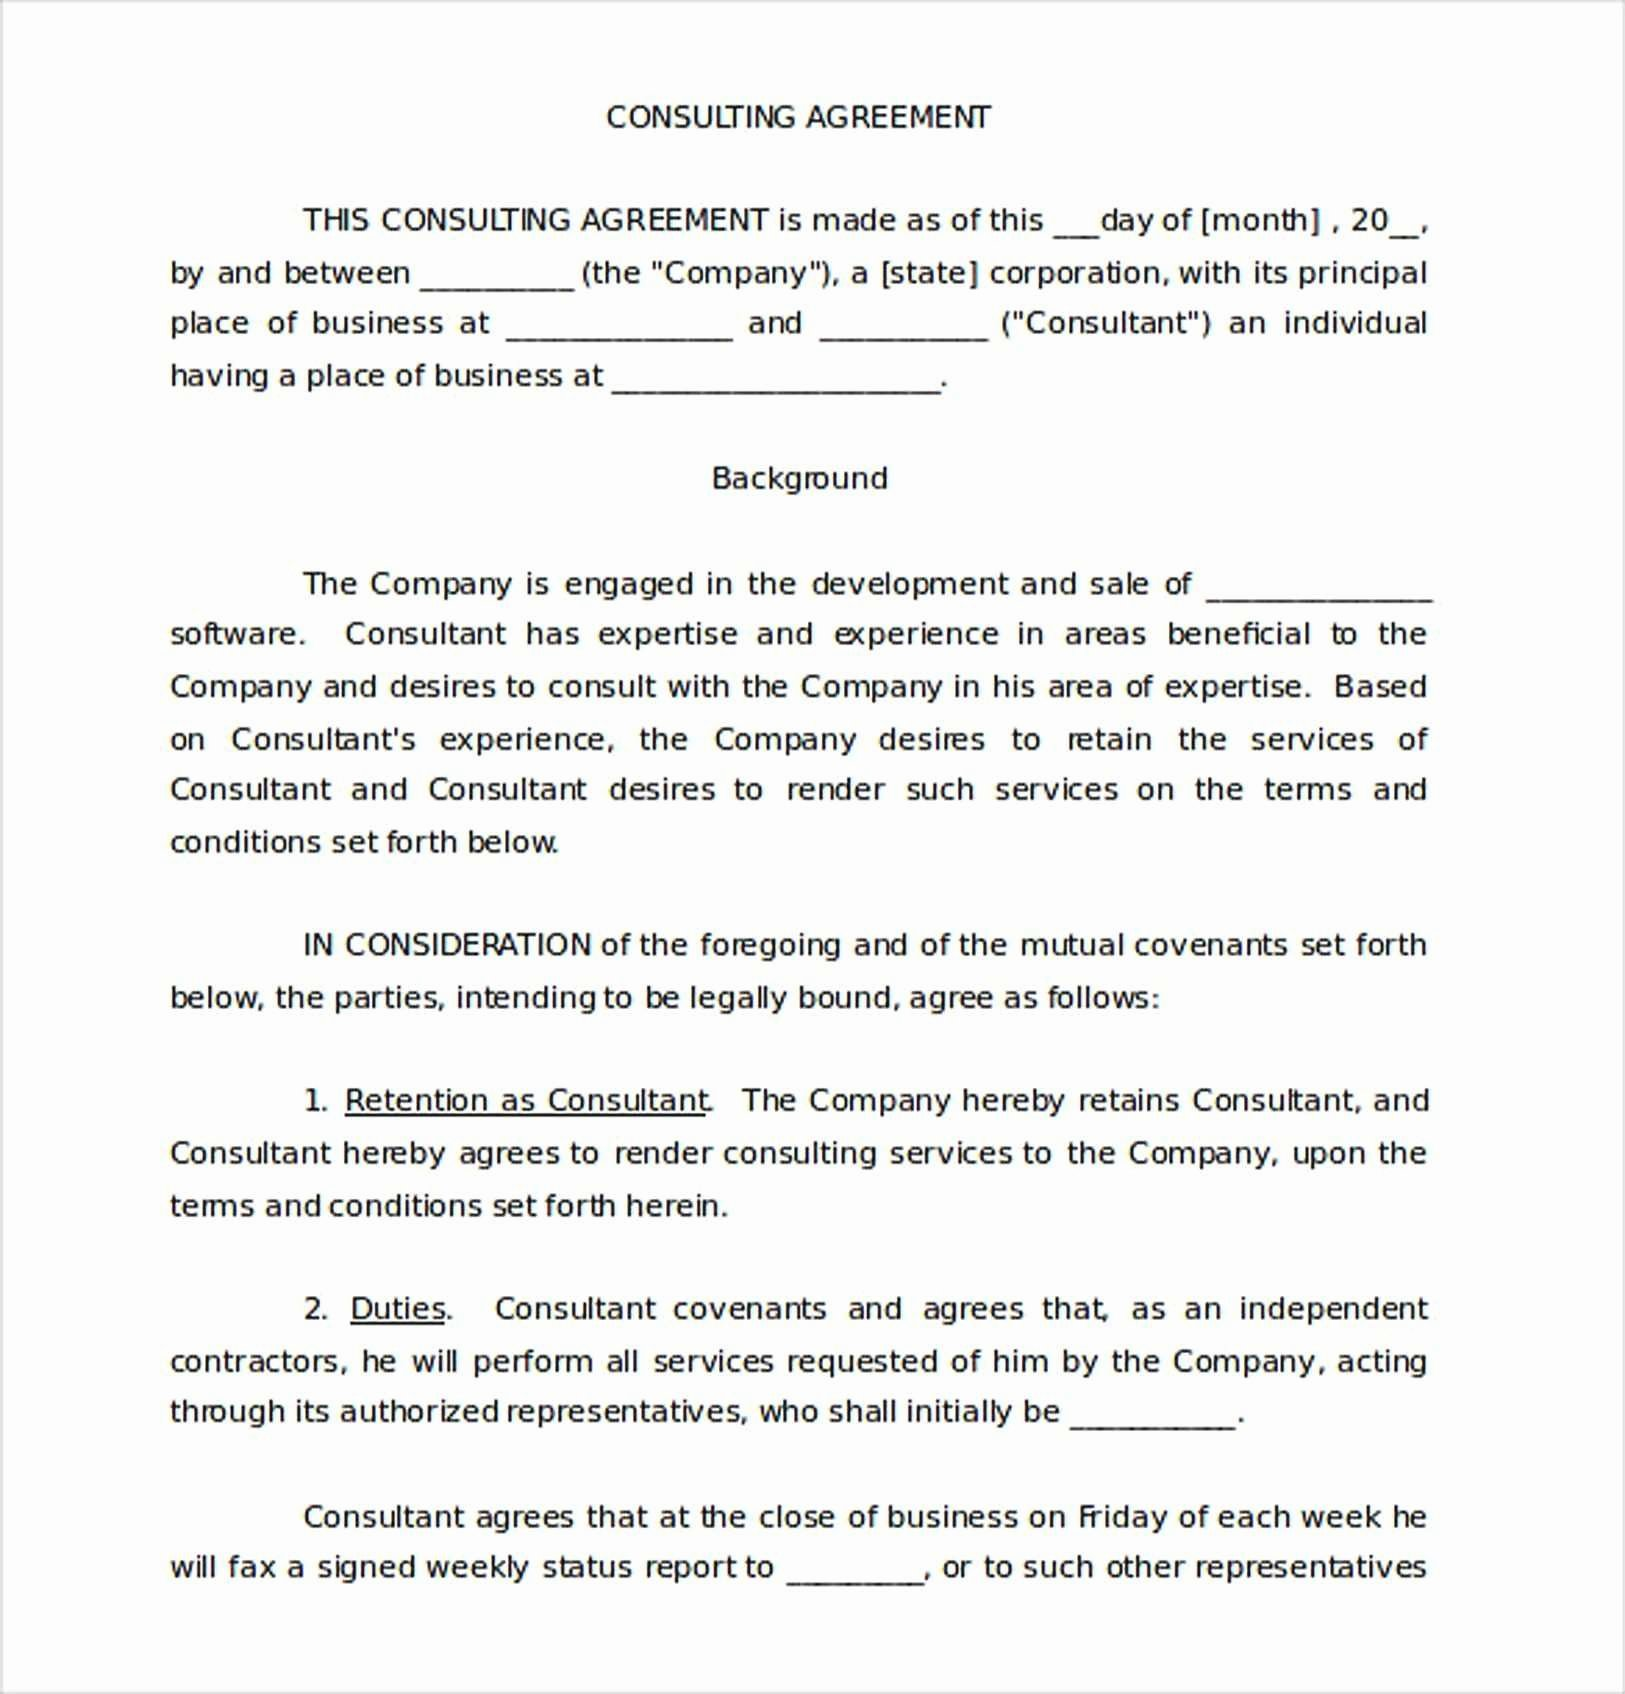 Short form Consulting Agreement Elegant Elegant Consulting Agreement Template Short